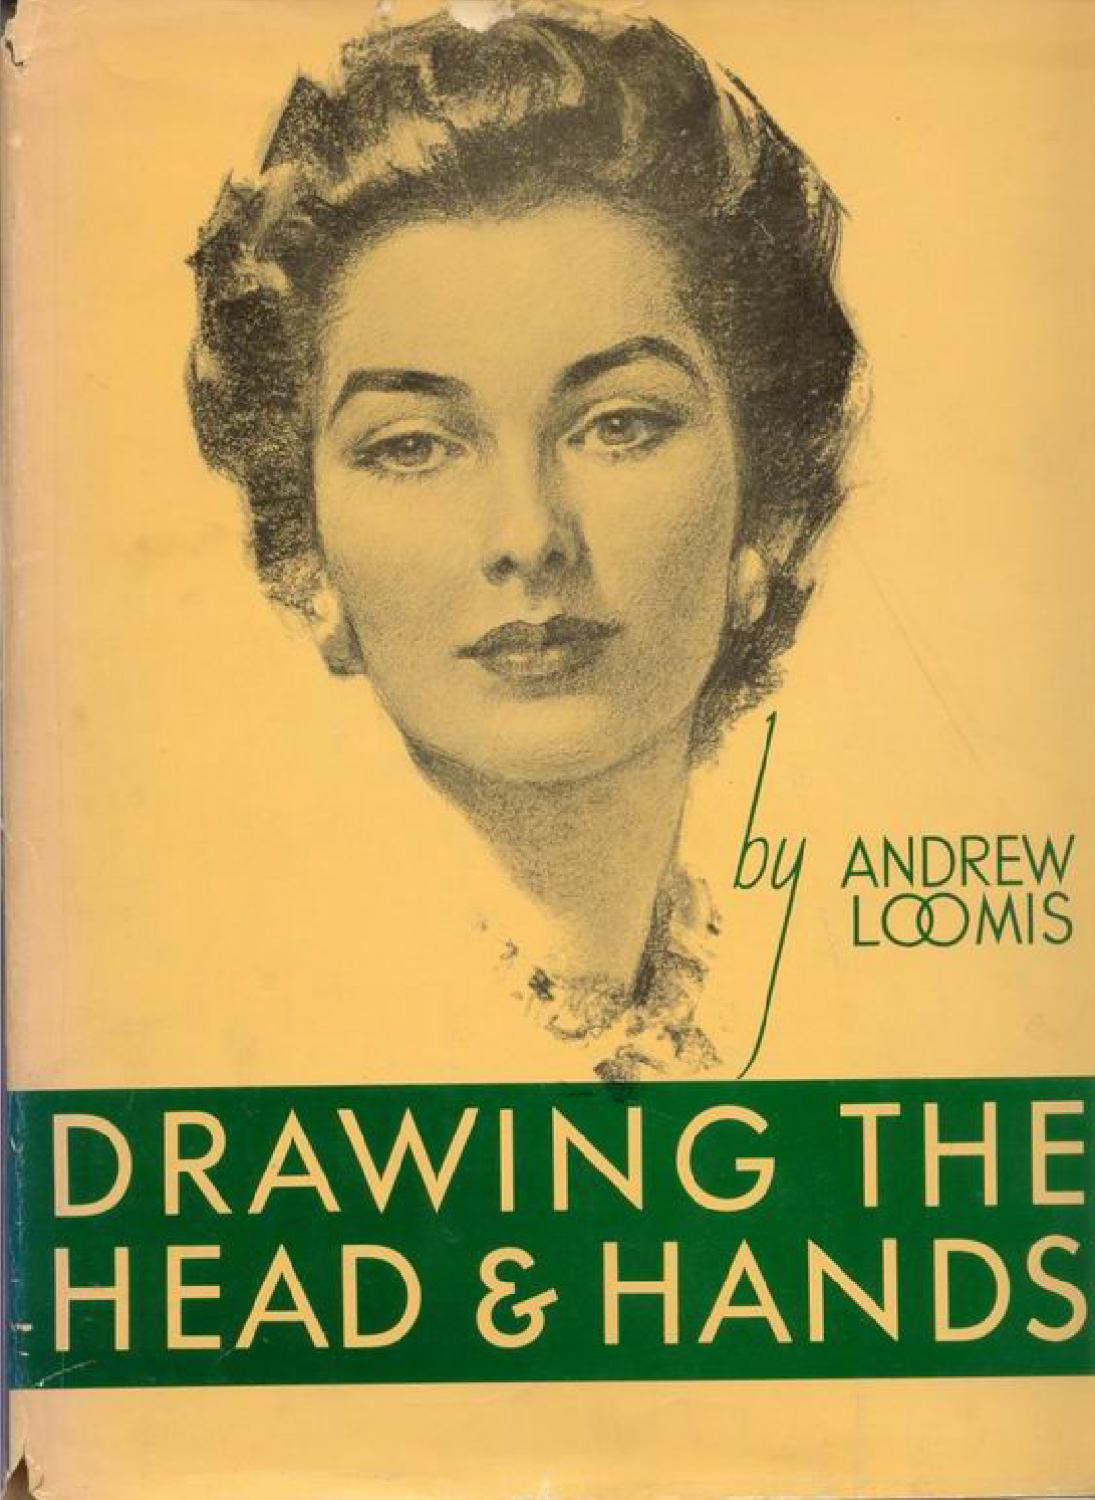 Andrew loomis - Drawing the head and hands by Vinicius